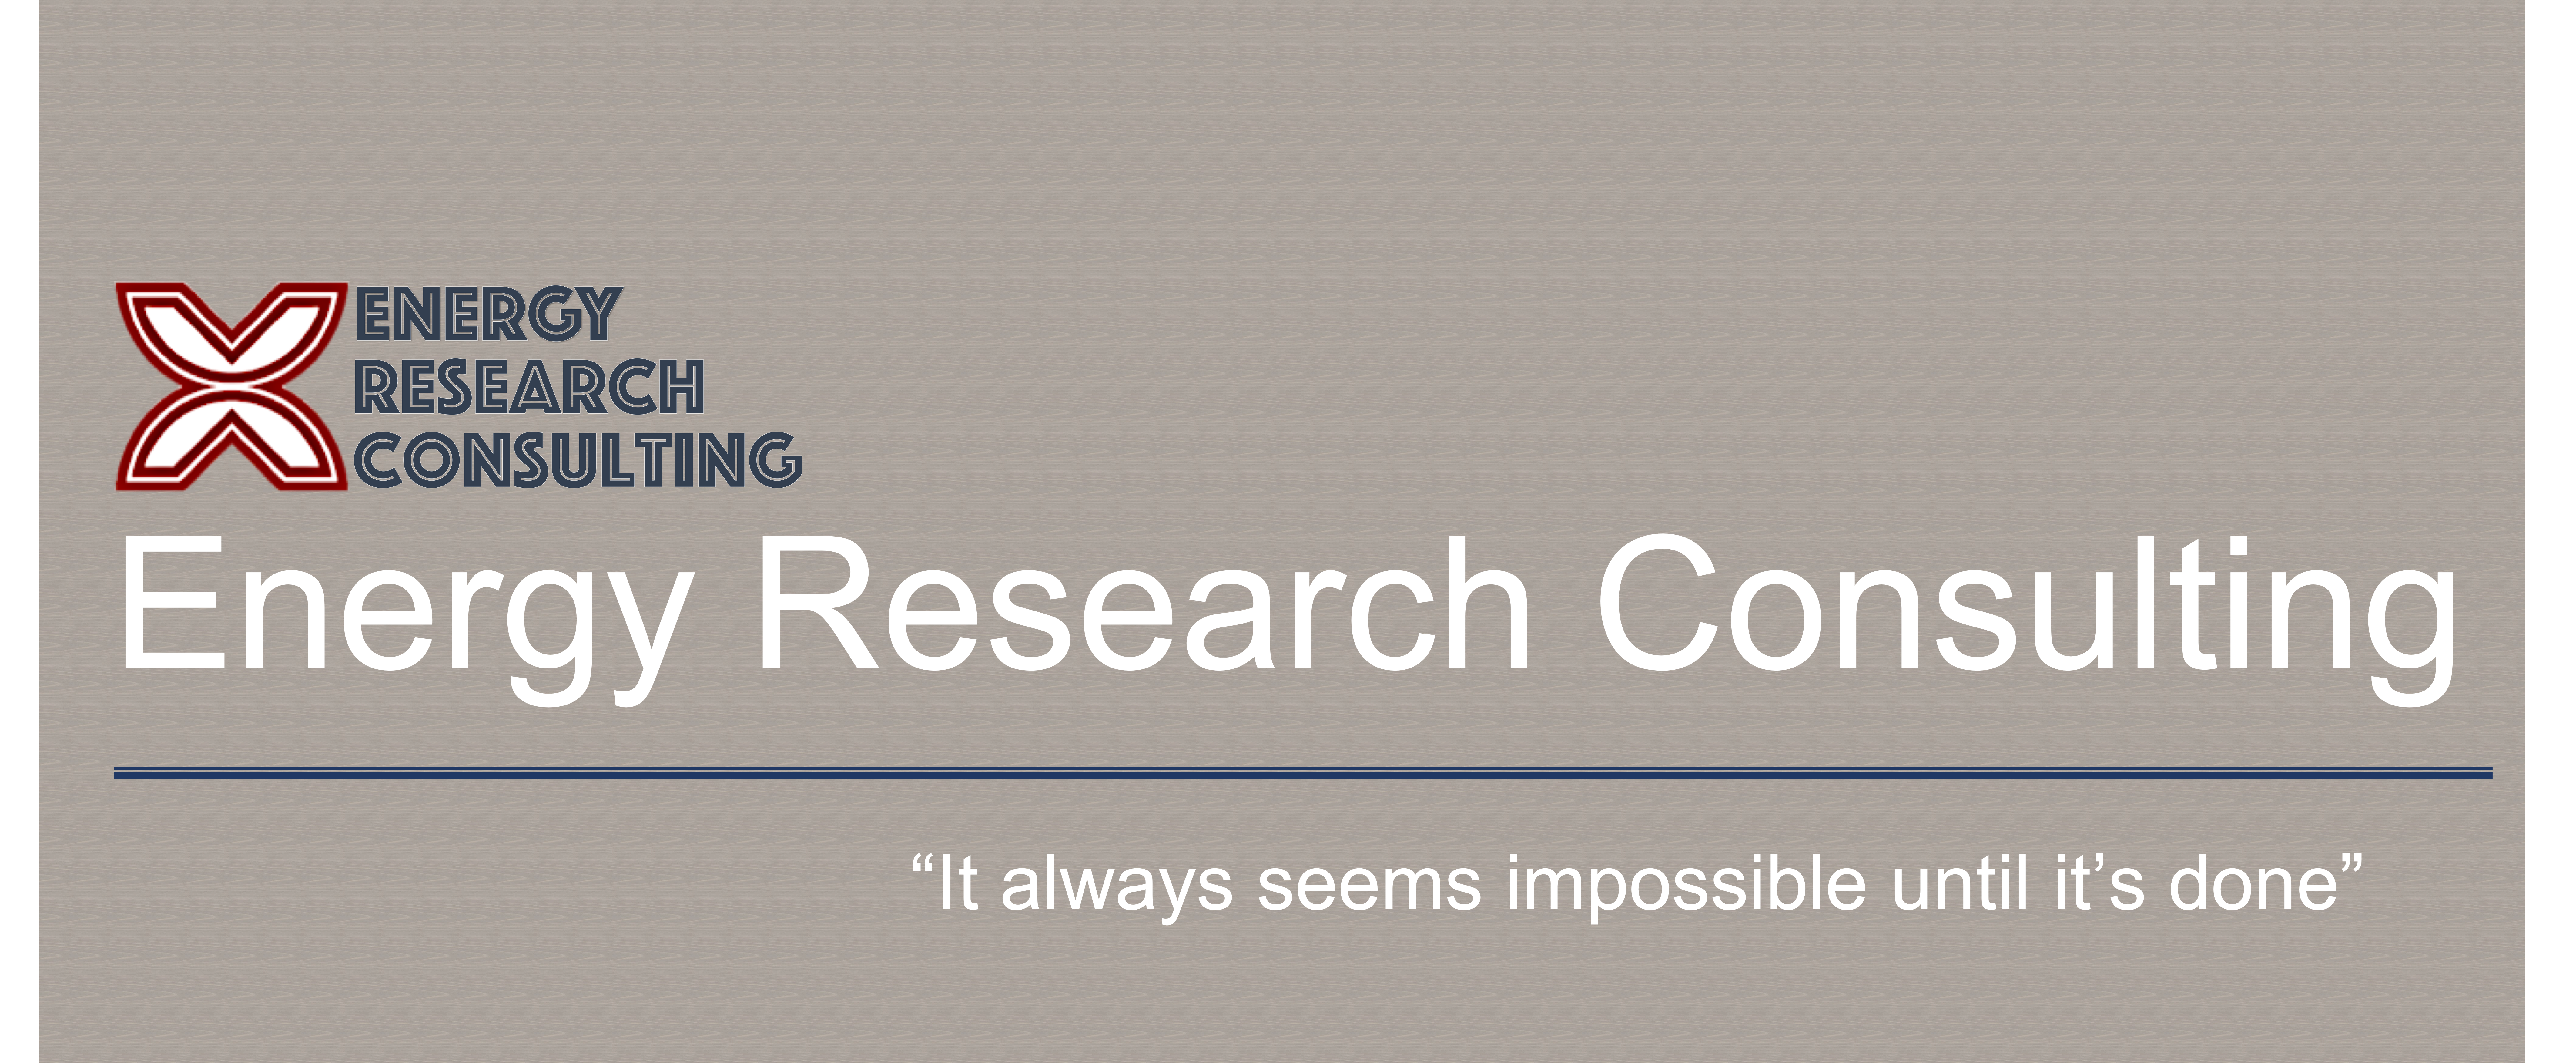 Energy Research Consulting